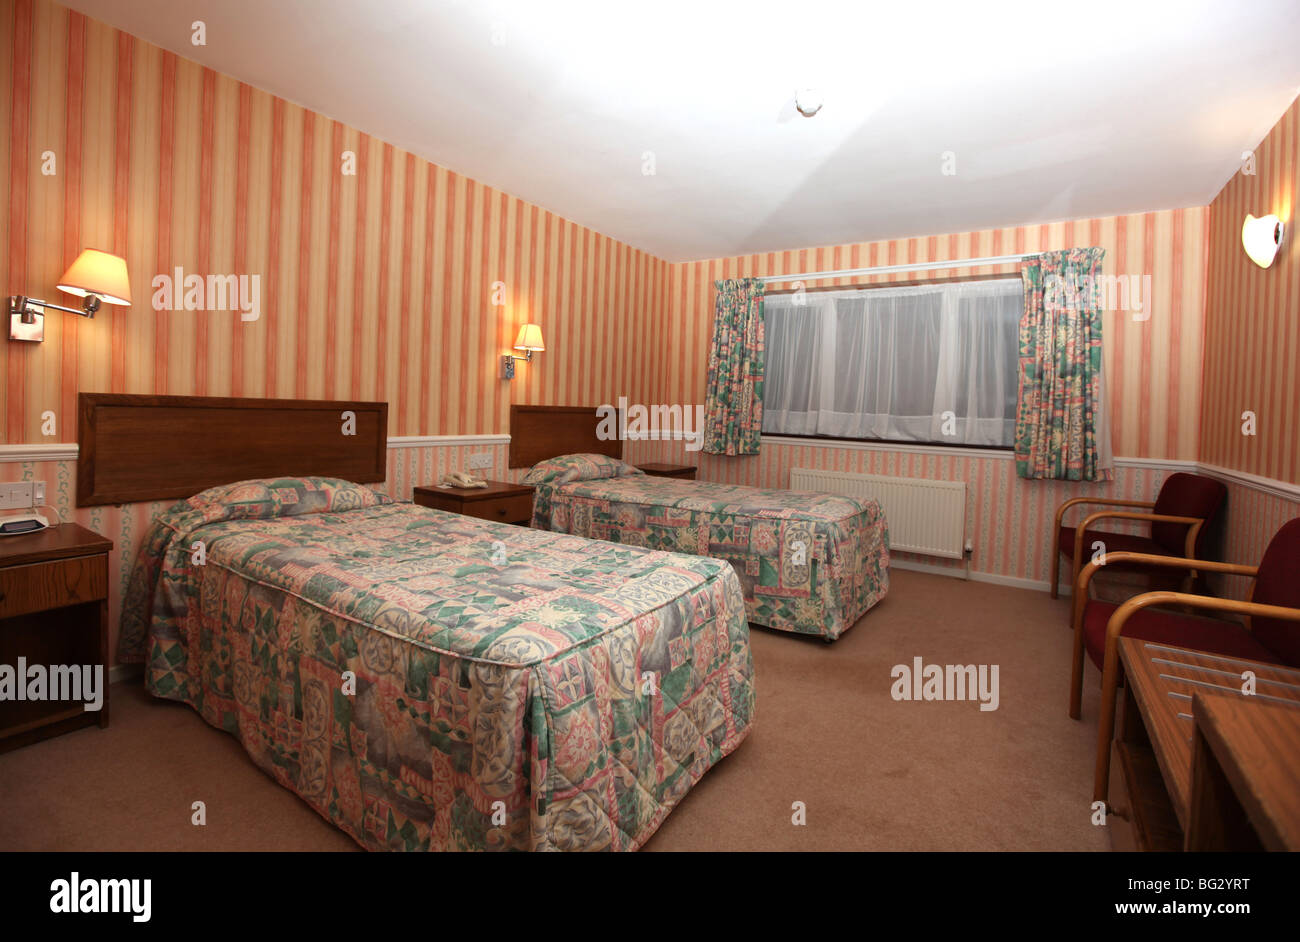 Bedroom For Two Twin Beds Typical Comfortable Hotel Bedroom With Two Twin Beds In The Room